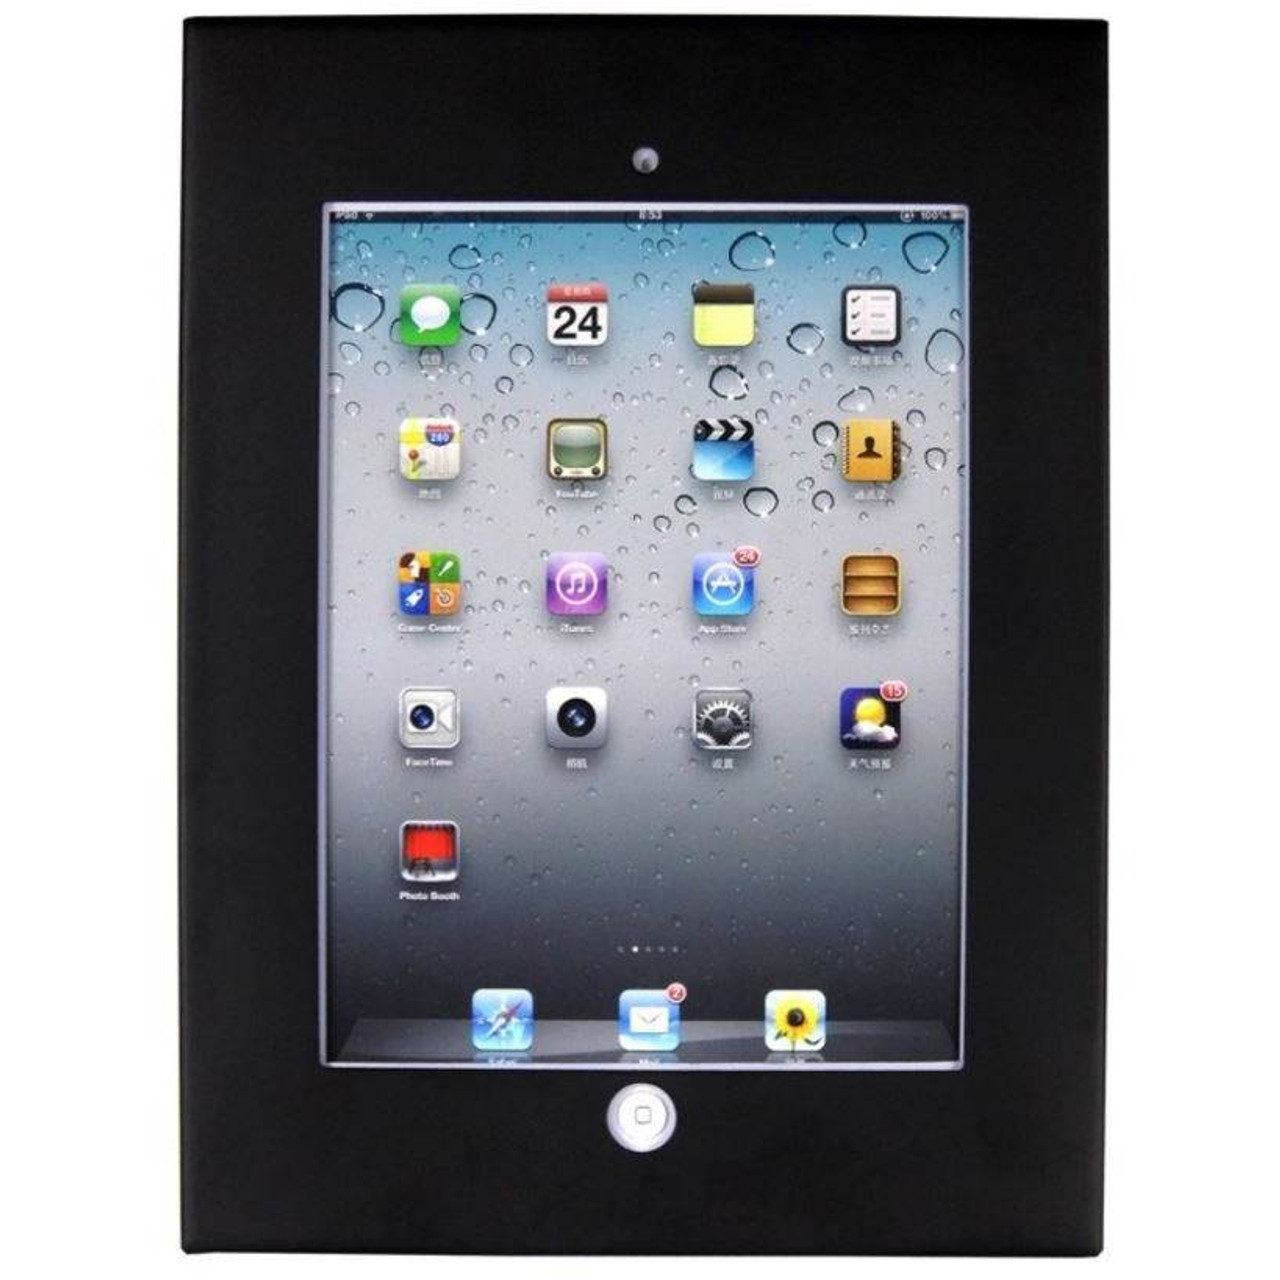 Image for Brateck Wall Mount Anti-Theft Secure Enclosure for iPad - PAD12-01A CX Computer Superstore